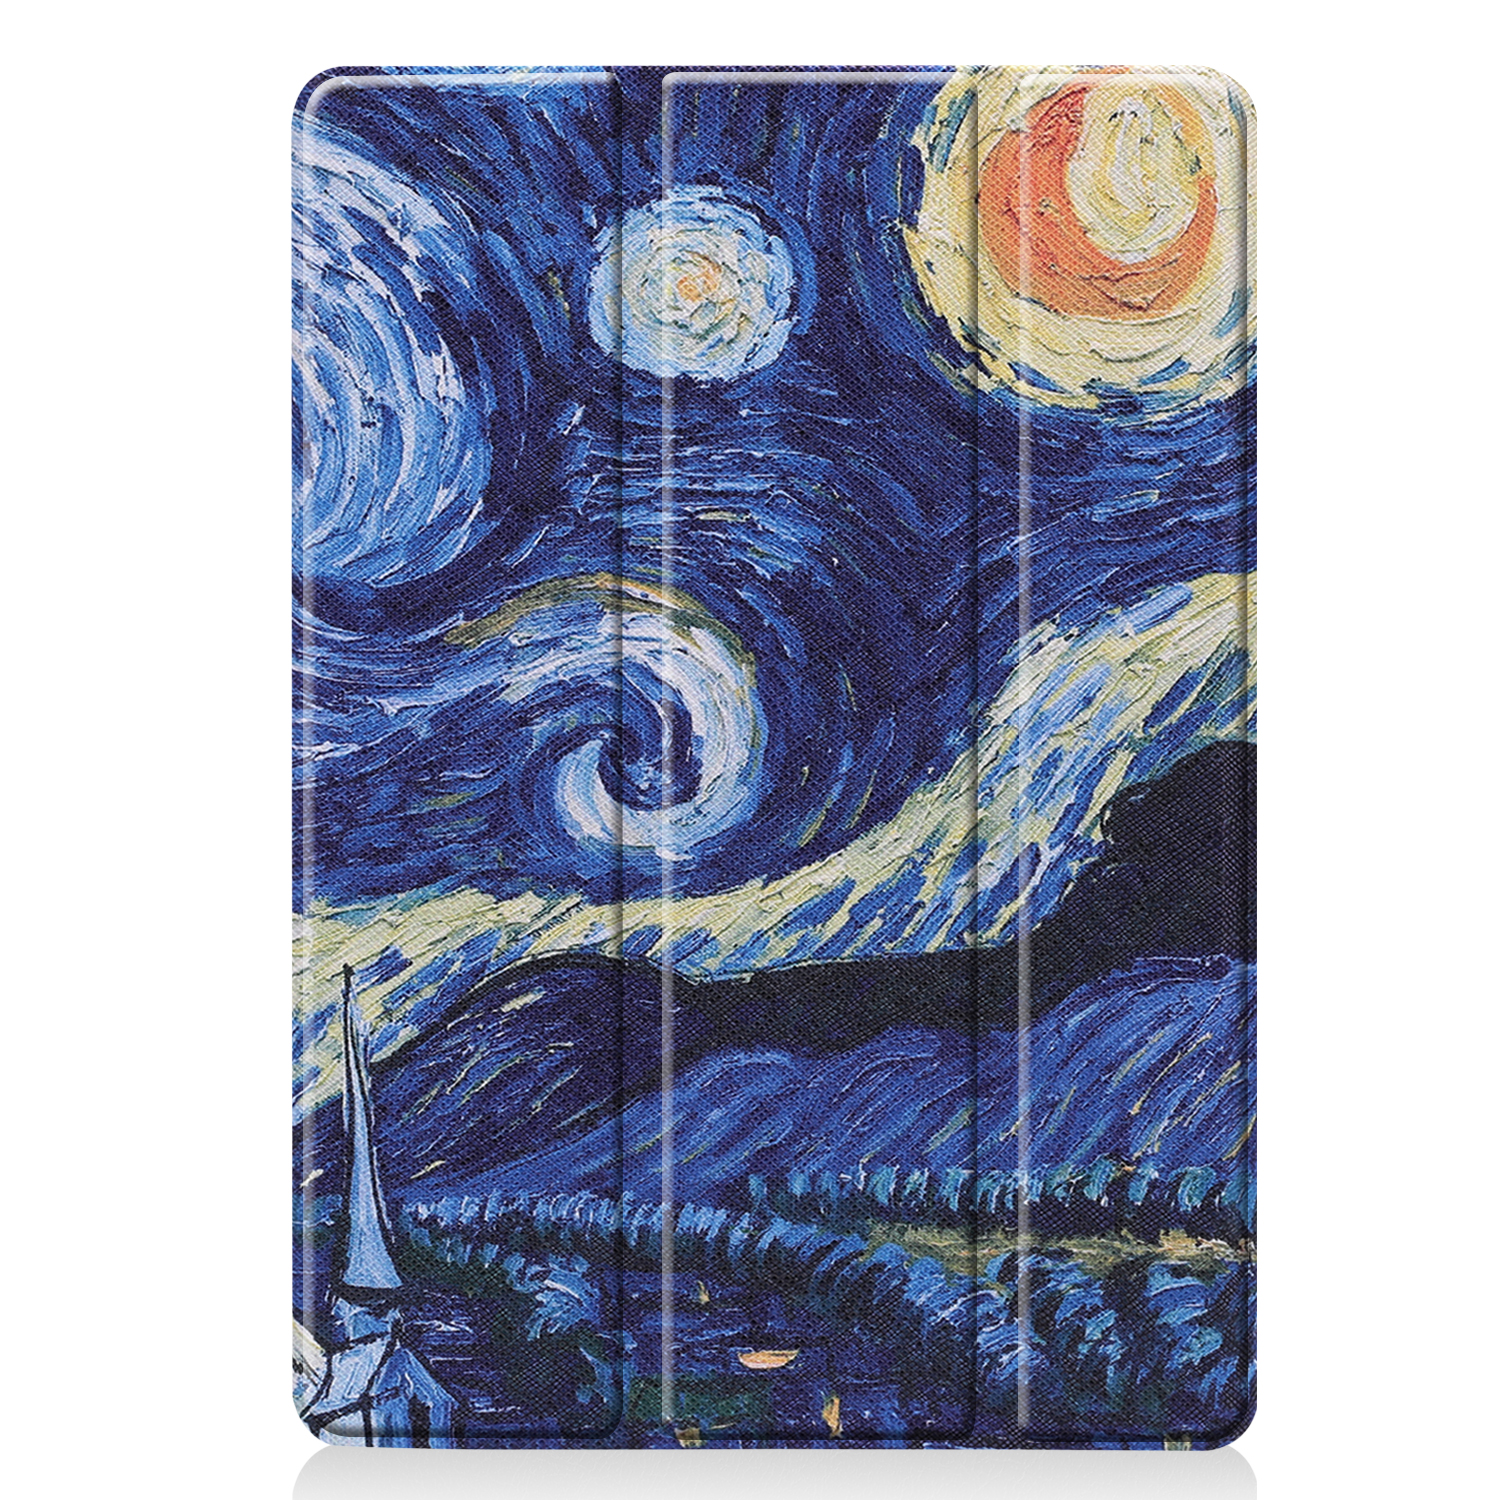 iPad Magnetic Smart-Cover A2428/a2429 iPad/8th/Cas Sleep for Apple Case 8-8th-Generation